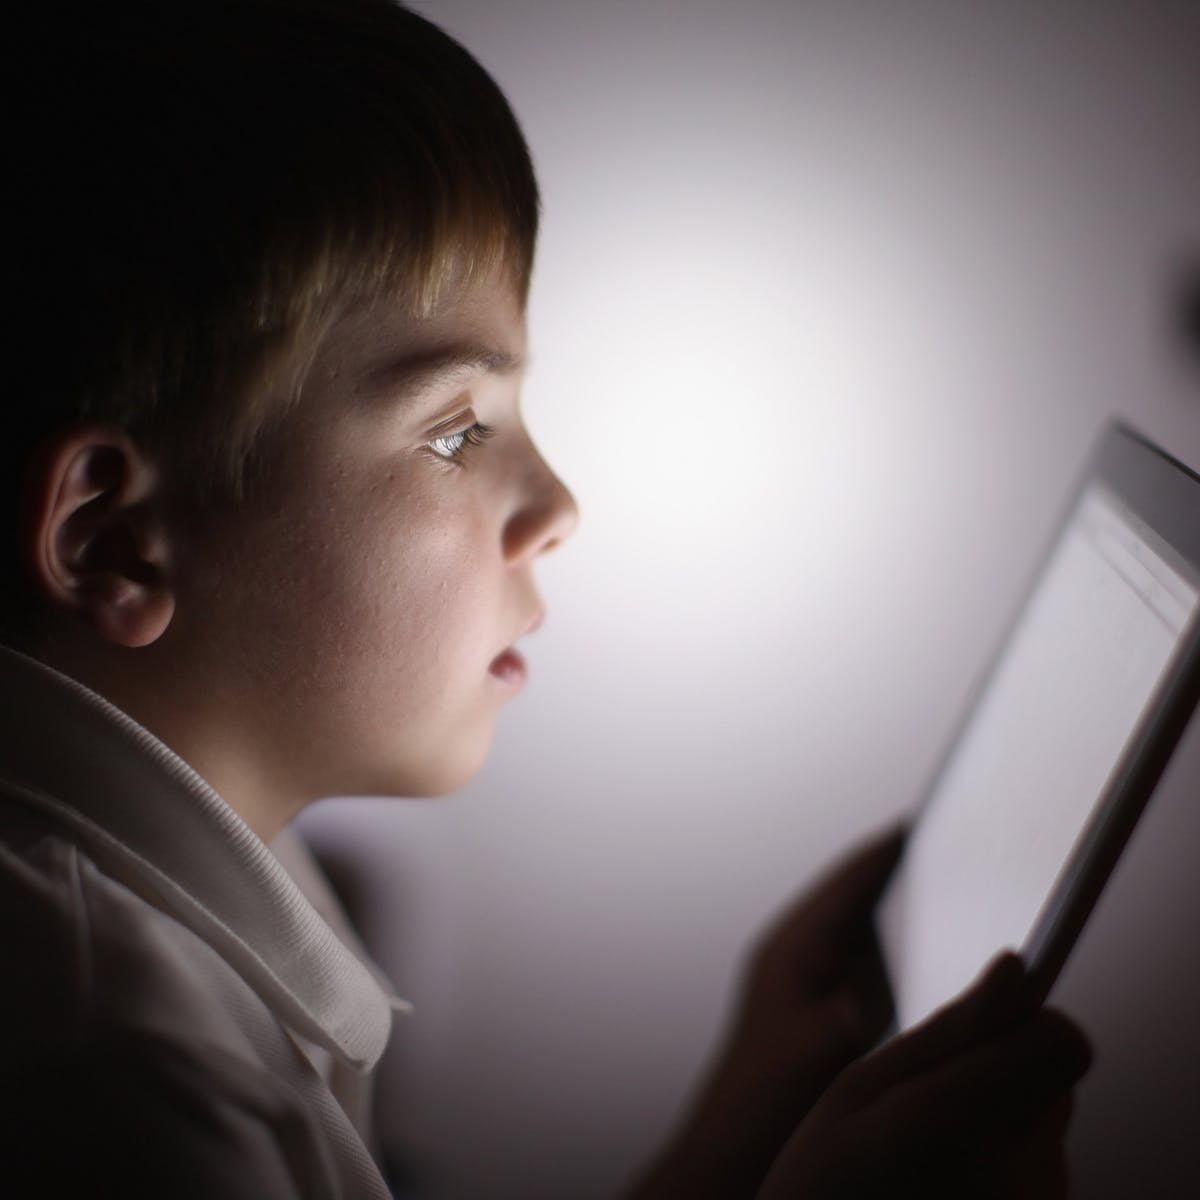 Increasing screen time during the coronavirus pandemic could be harmful to  kids' eyesight